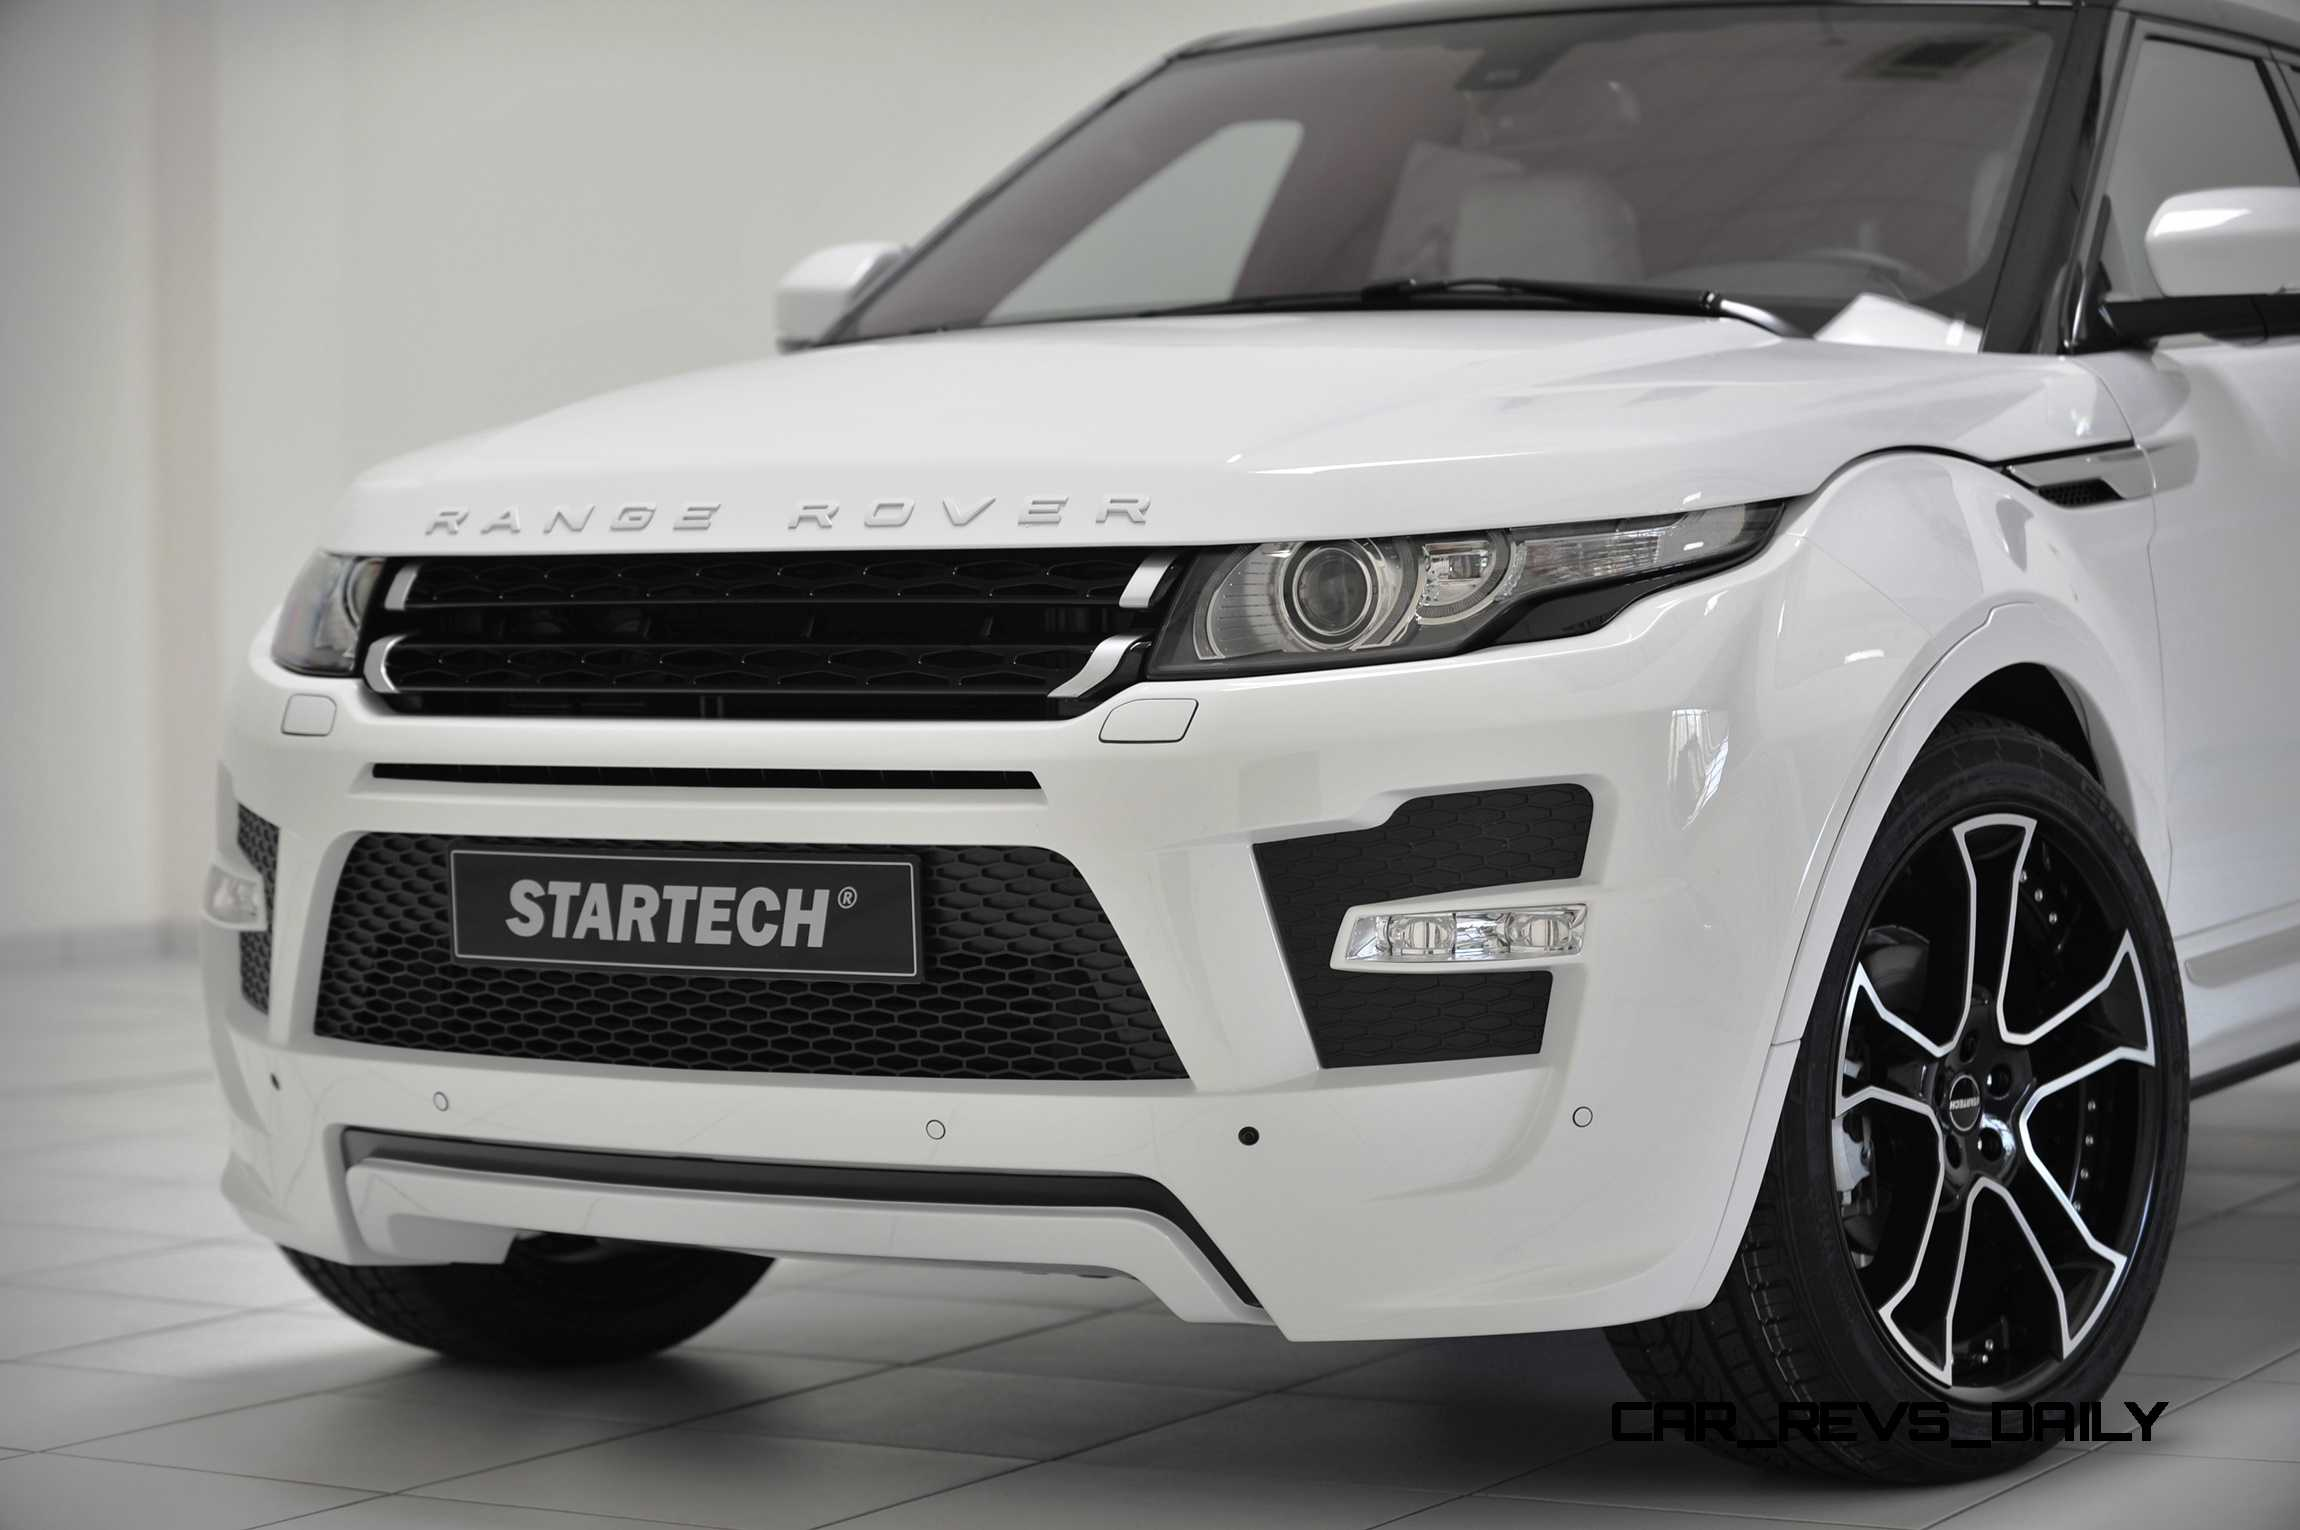 six custom brabus startech range rover evoques show huge style gains 15. Black Bedroom Furniture Sets. Home Design Ideas